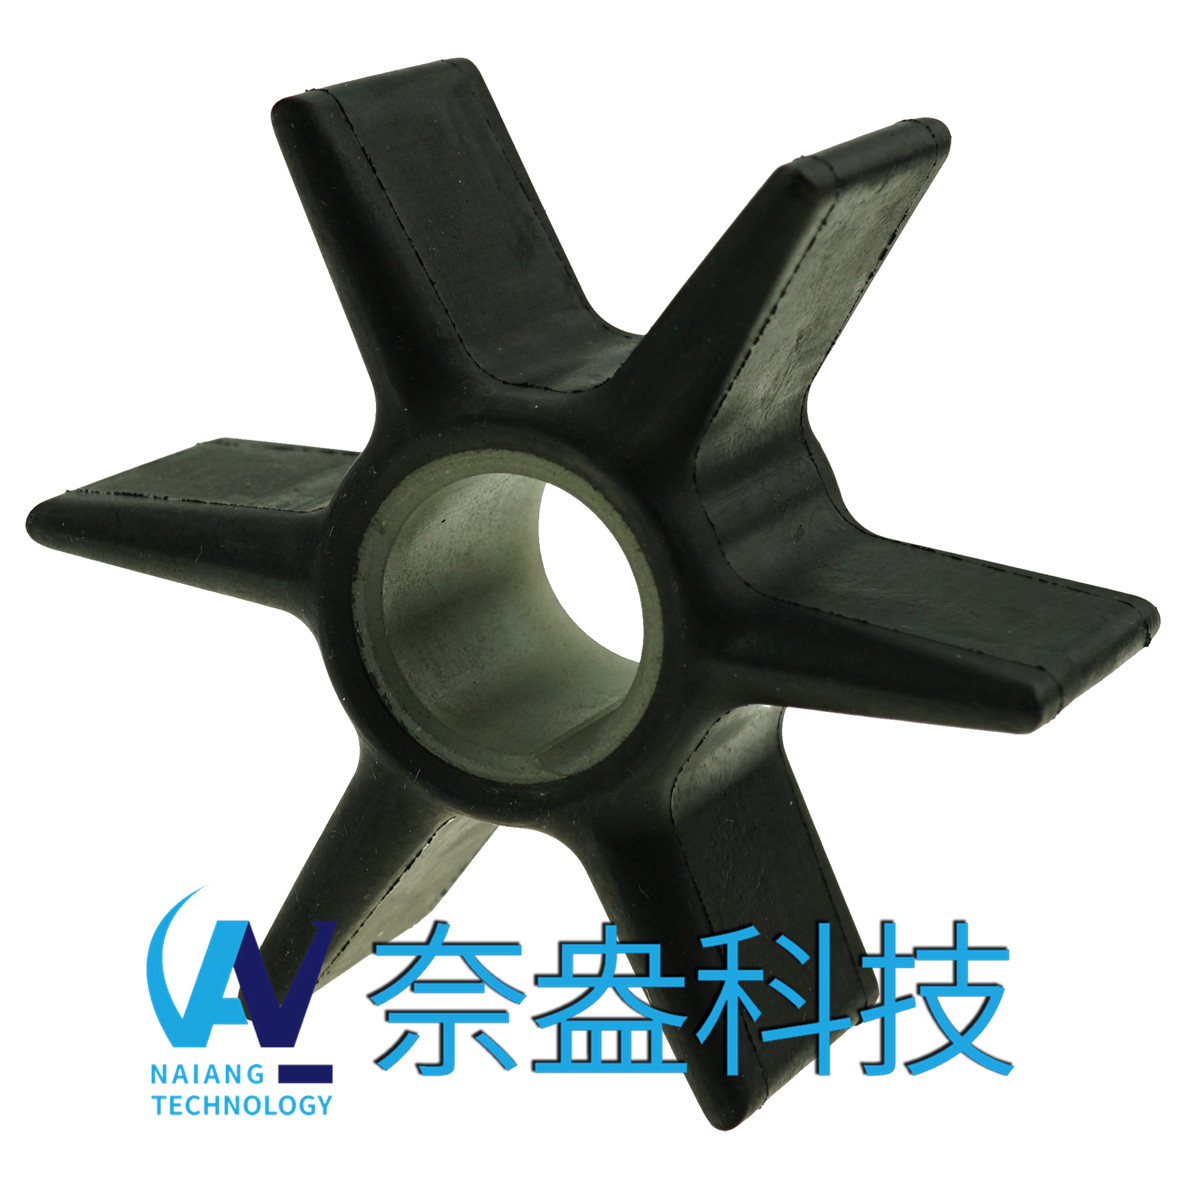 水星舷外機橡膠葉輪 240-250hp -Mercury Impeller47-430